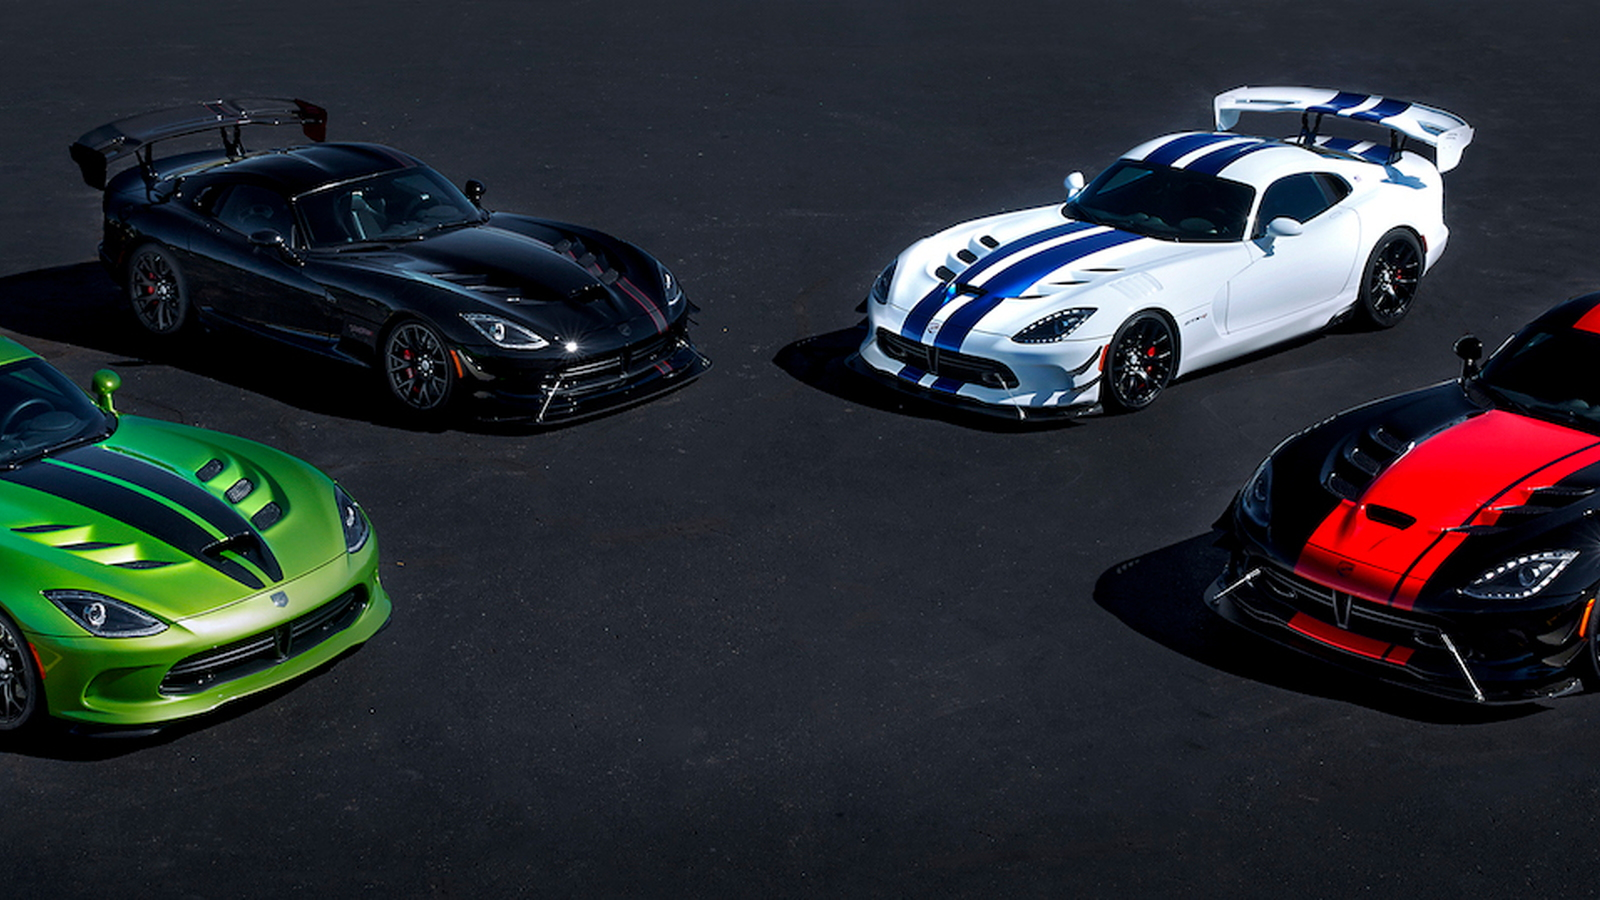 2017 Dodge Viper 25th anniversary limited edition models